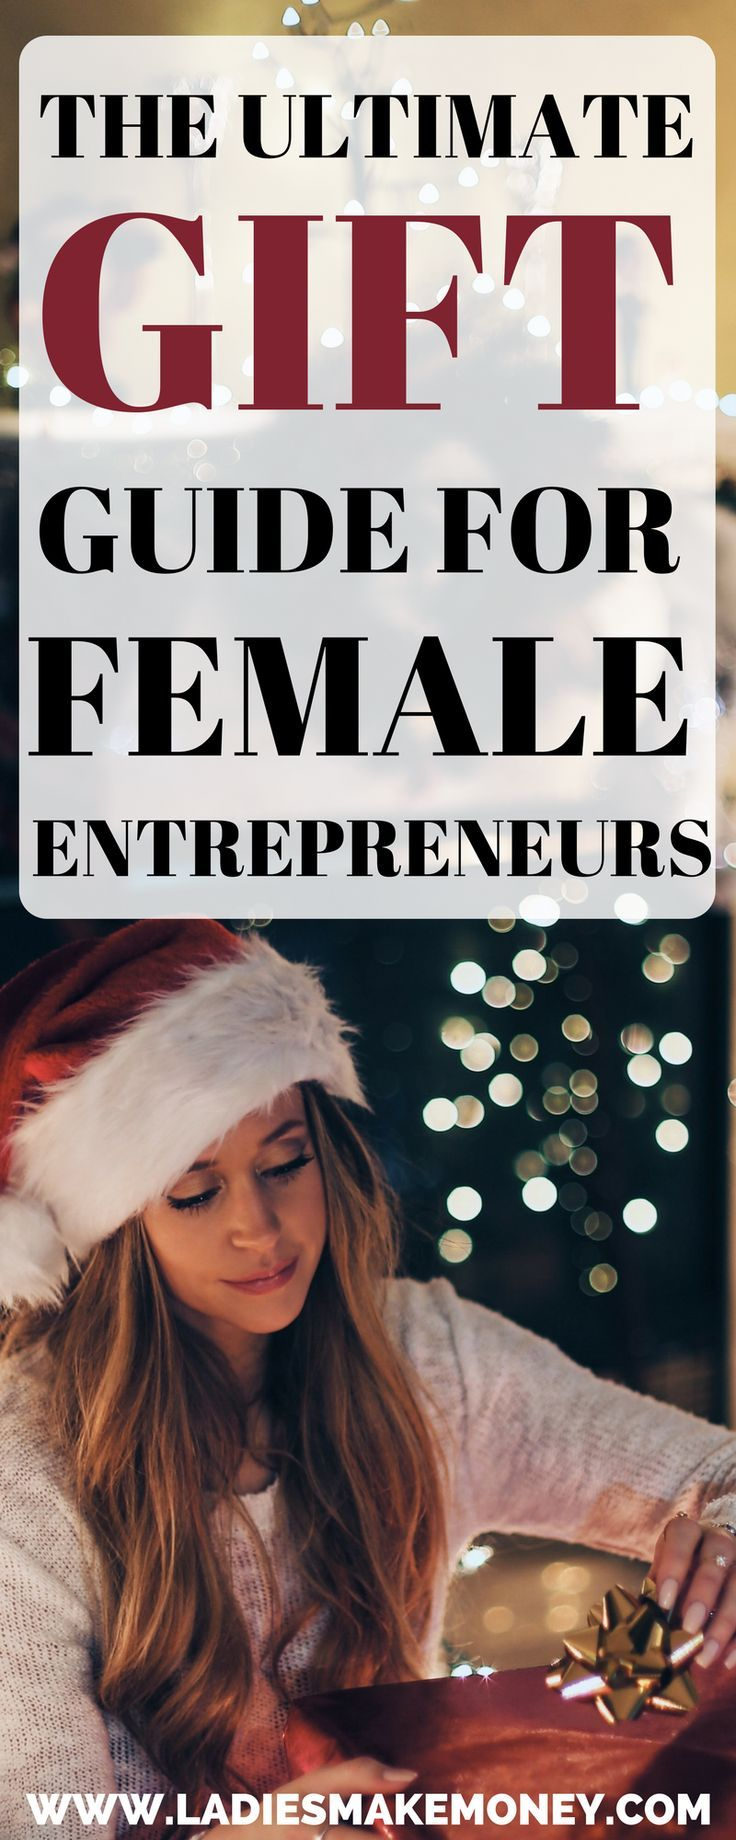 The perfect gift guide for you to get that boss babe. Are you Christmas shopping? If you want to get the perfect gift for her, take a look at this holiday gift guide we created. Christmas gift ideas diy full of ideas for Christmas gift Ideas. Christmas gi